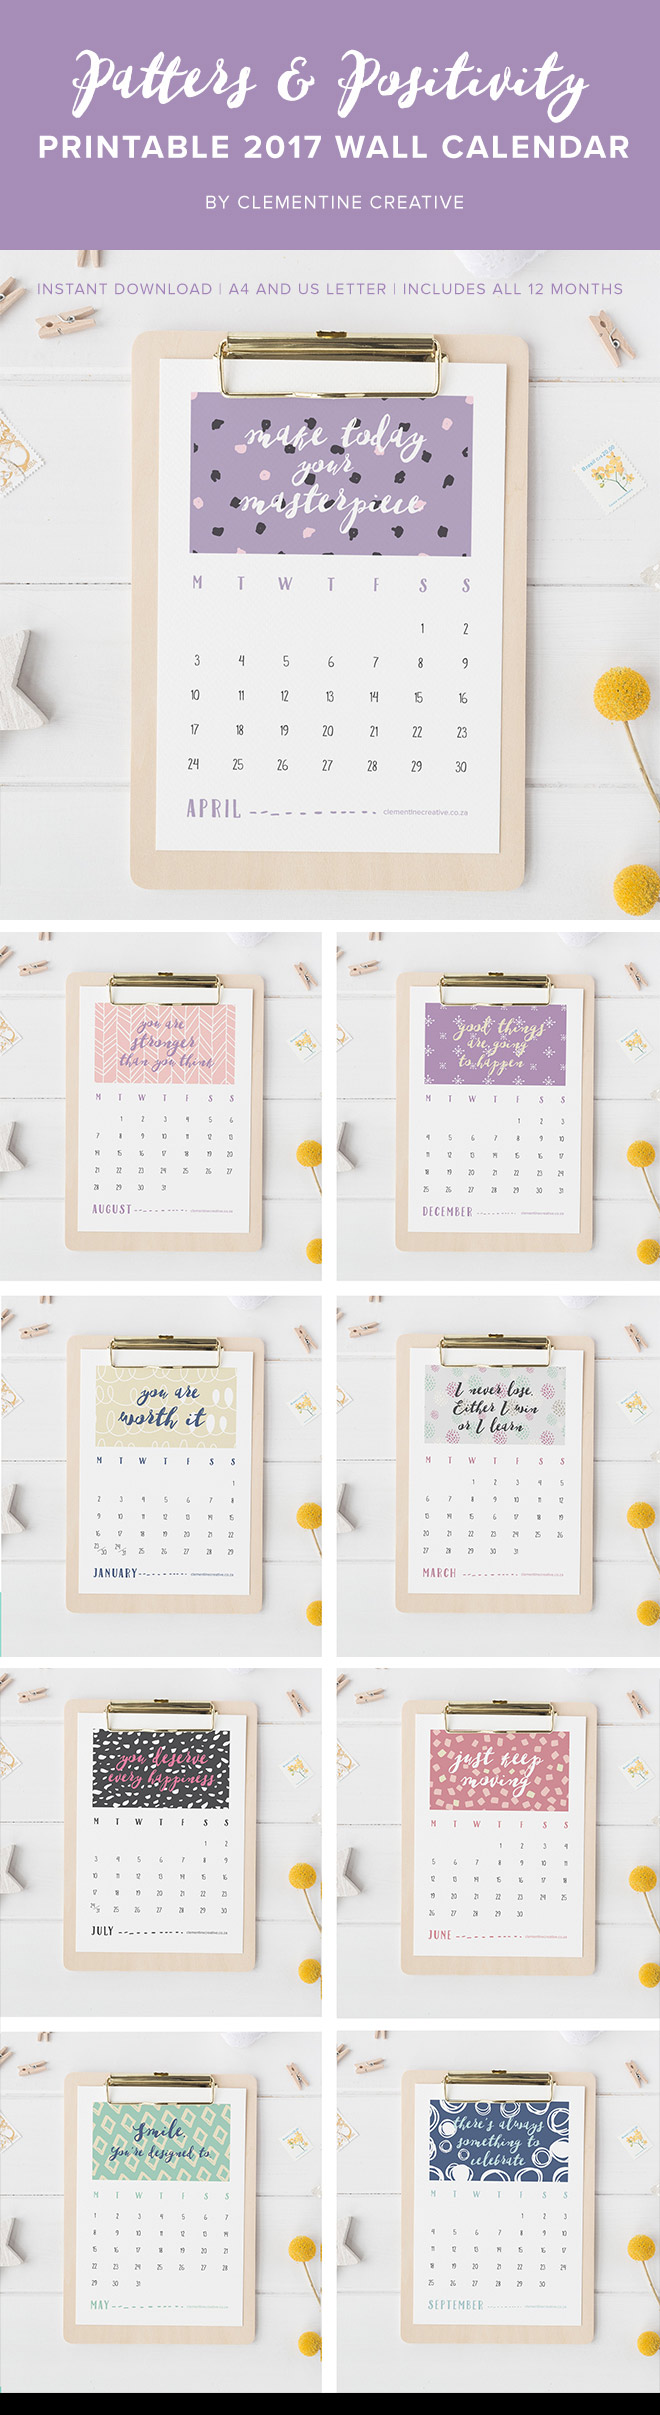 Stay Positive With This Quotes Calendar Printable 2017 Calendar